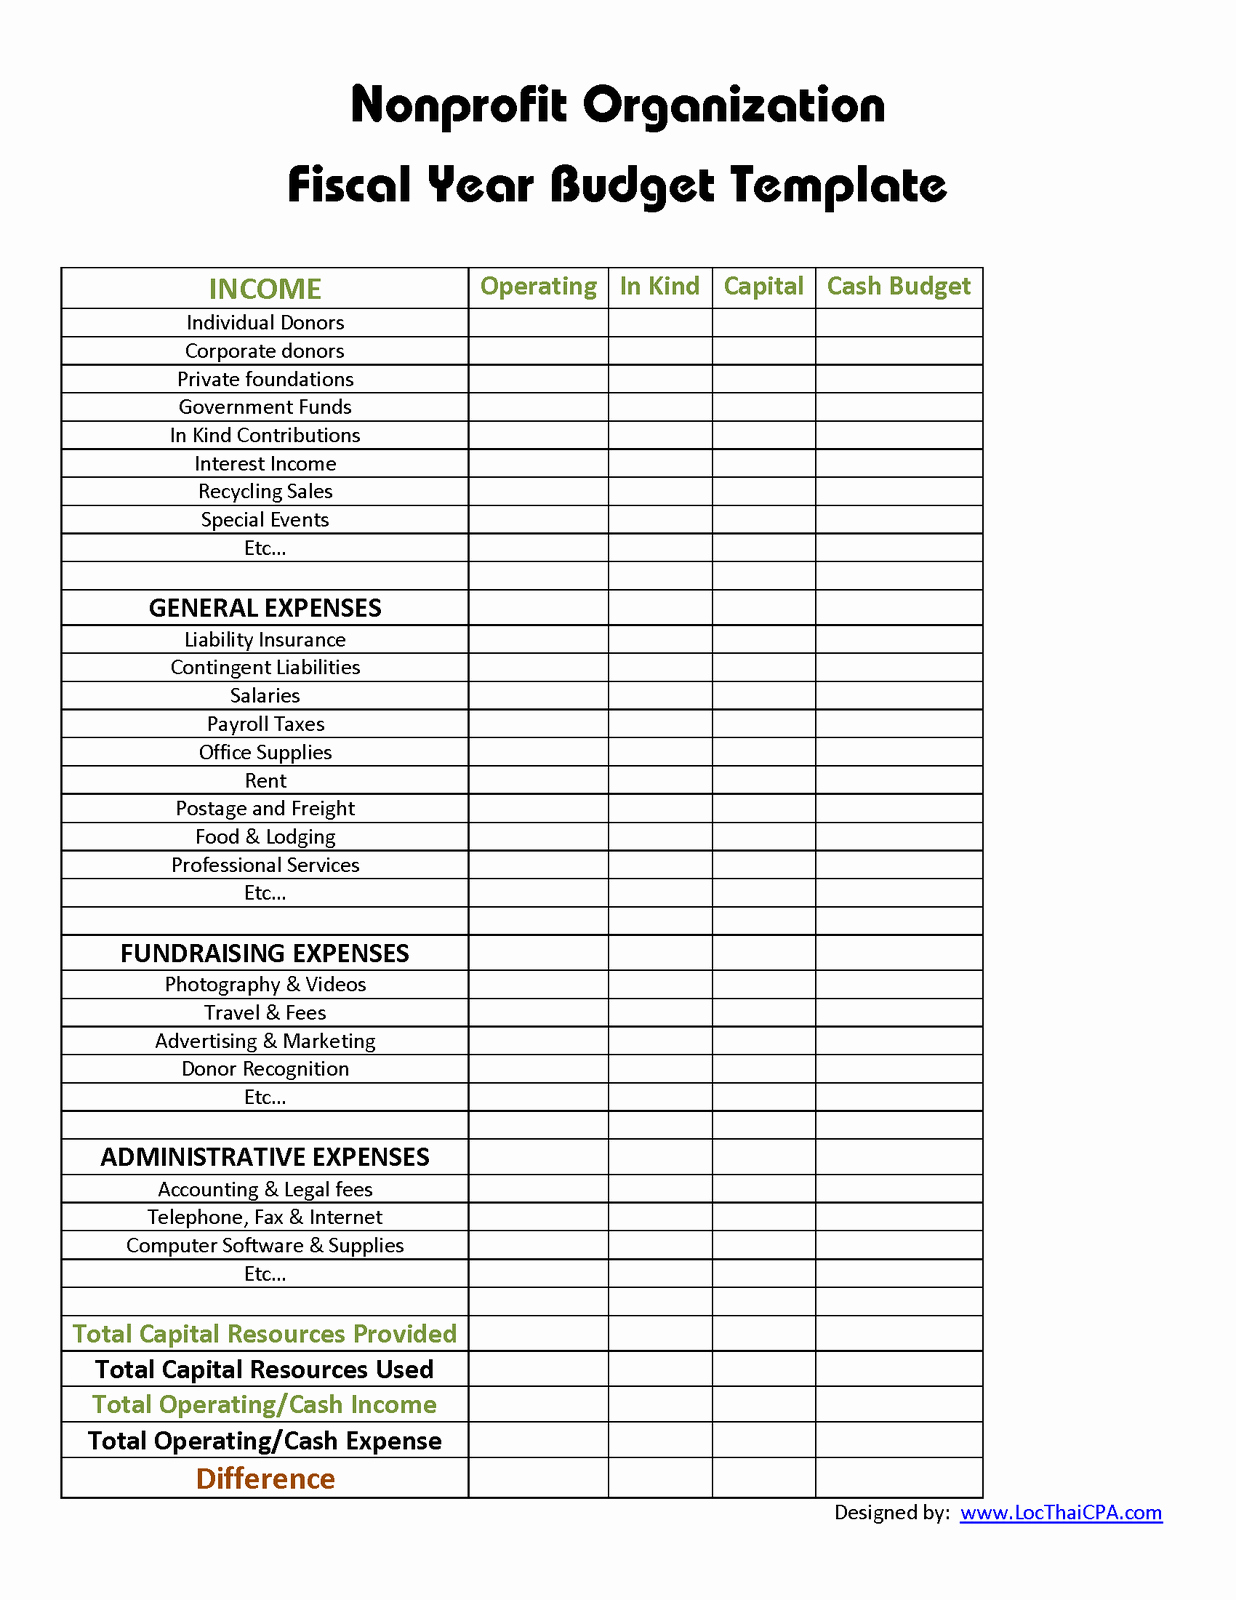 Non Profit Budget Template Fresh Loc Thai Cpa Pc Nonprofit organization Fiscal Year